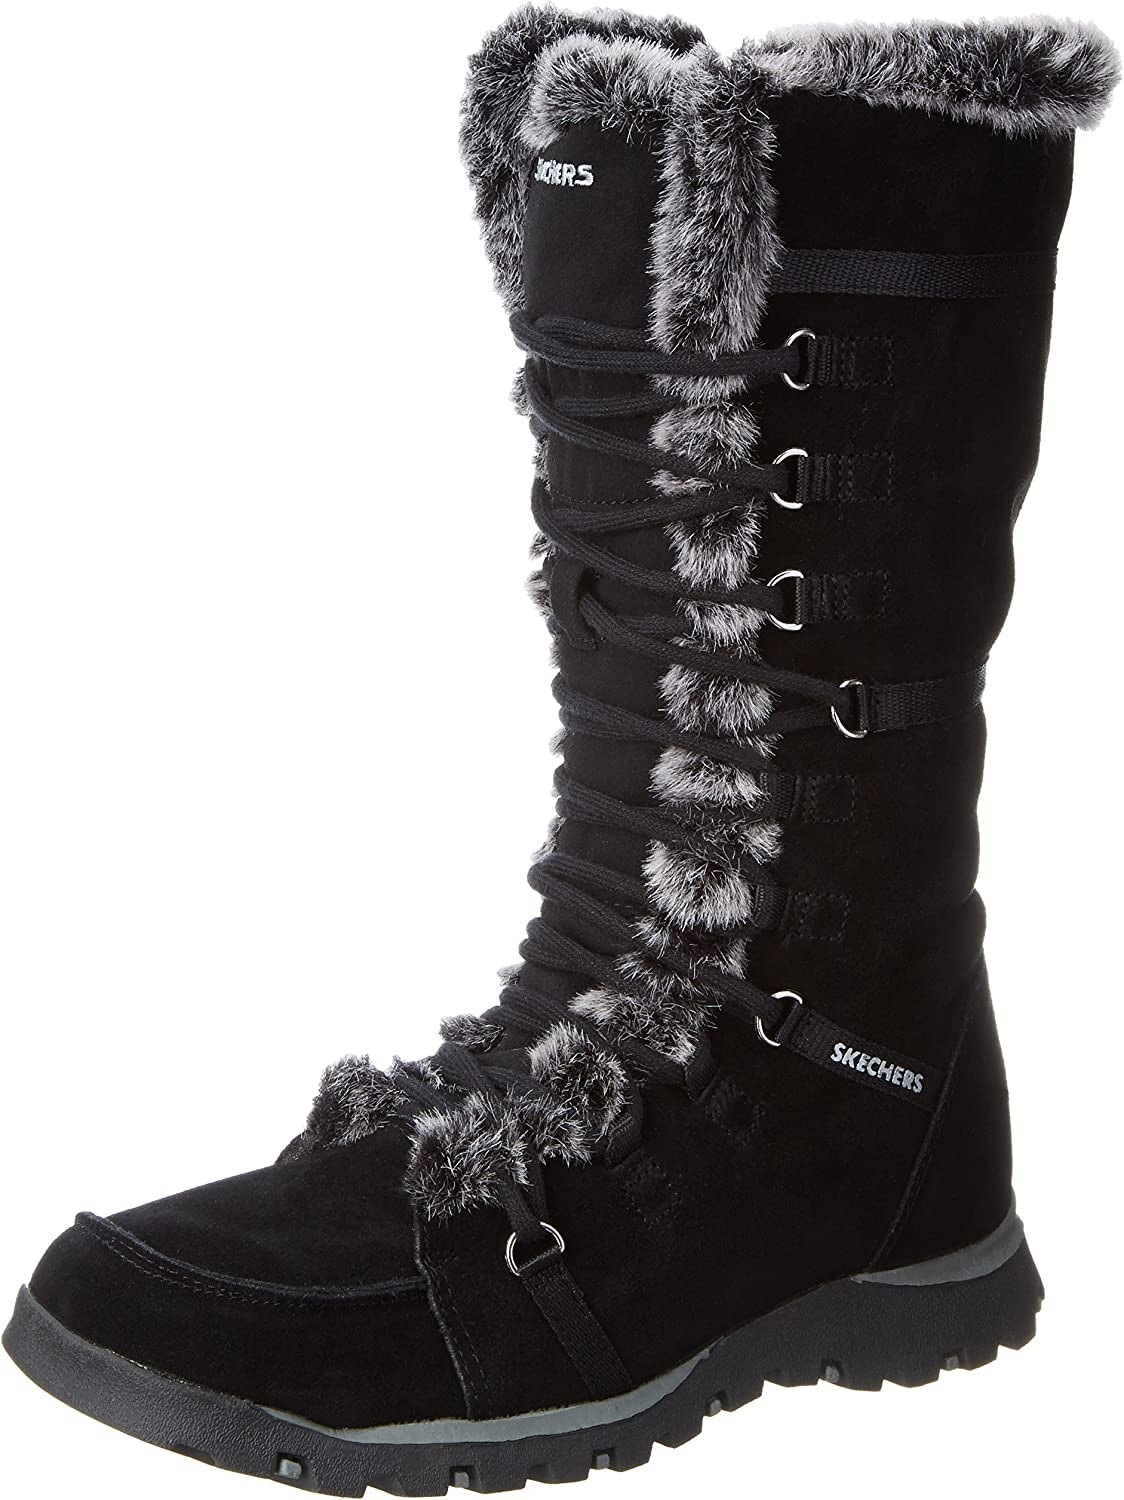 B000VHTBYS Skechers Women's Grand Jams Unlimited Boot 91FaPqUwucL